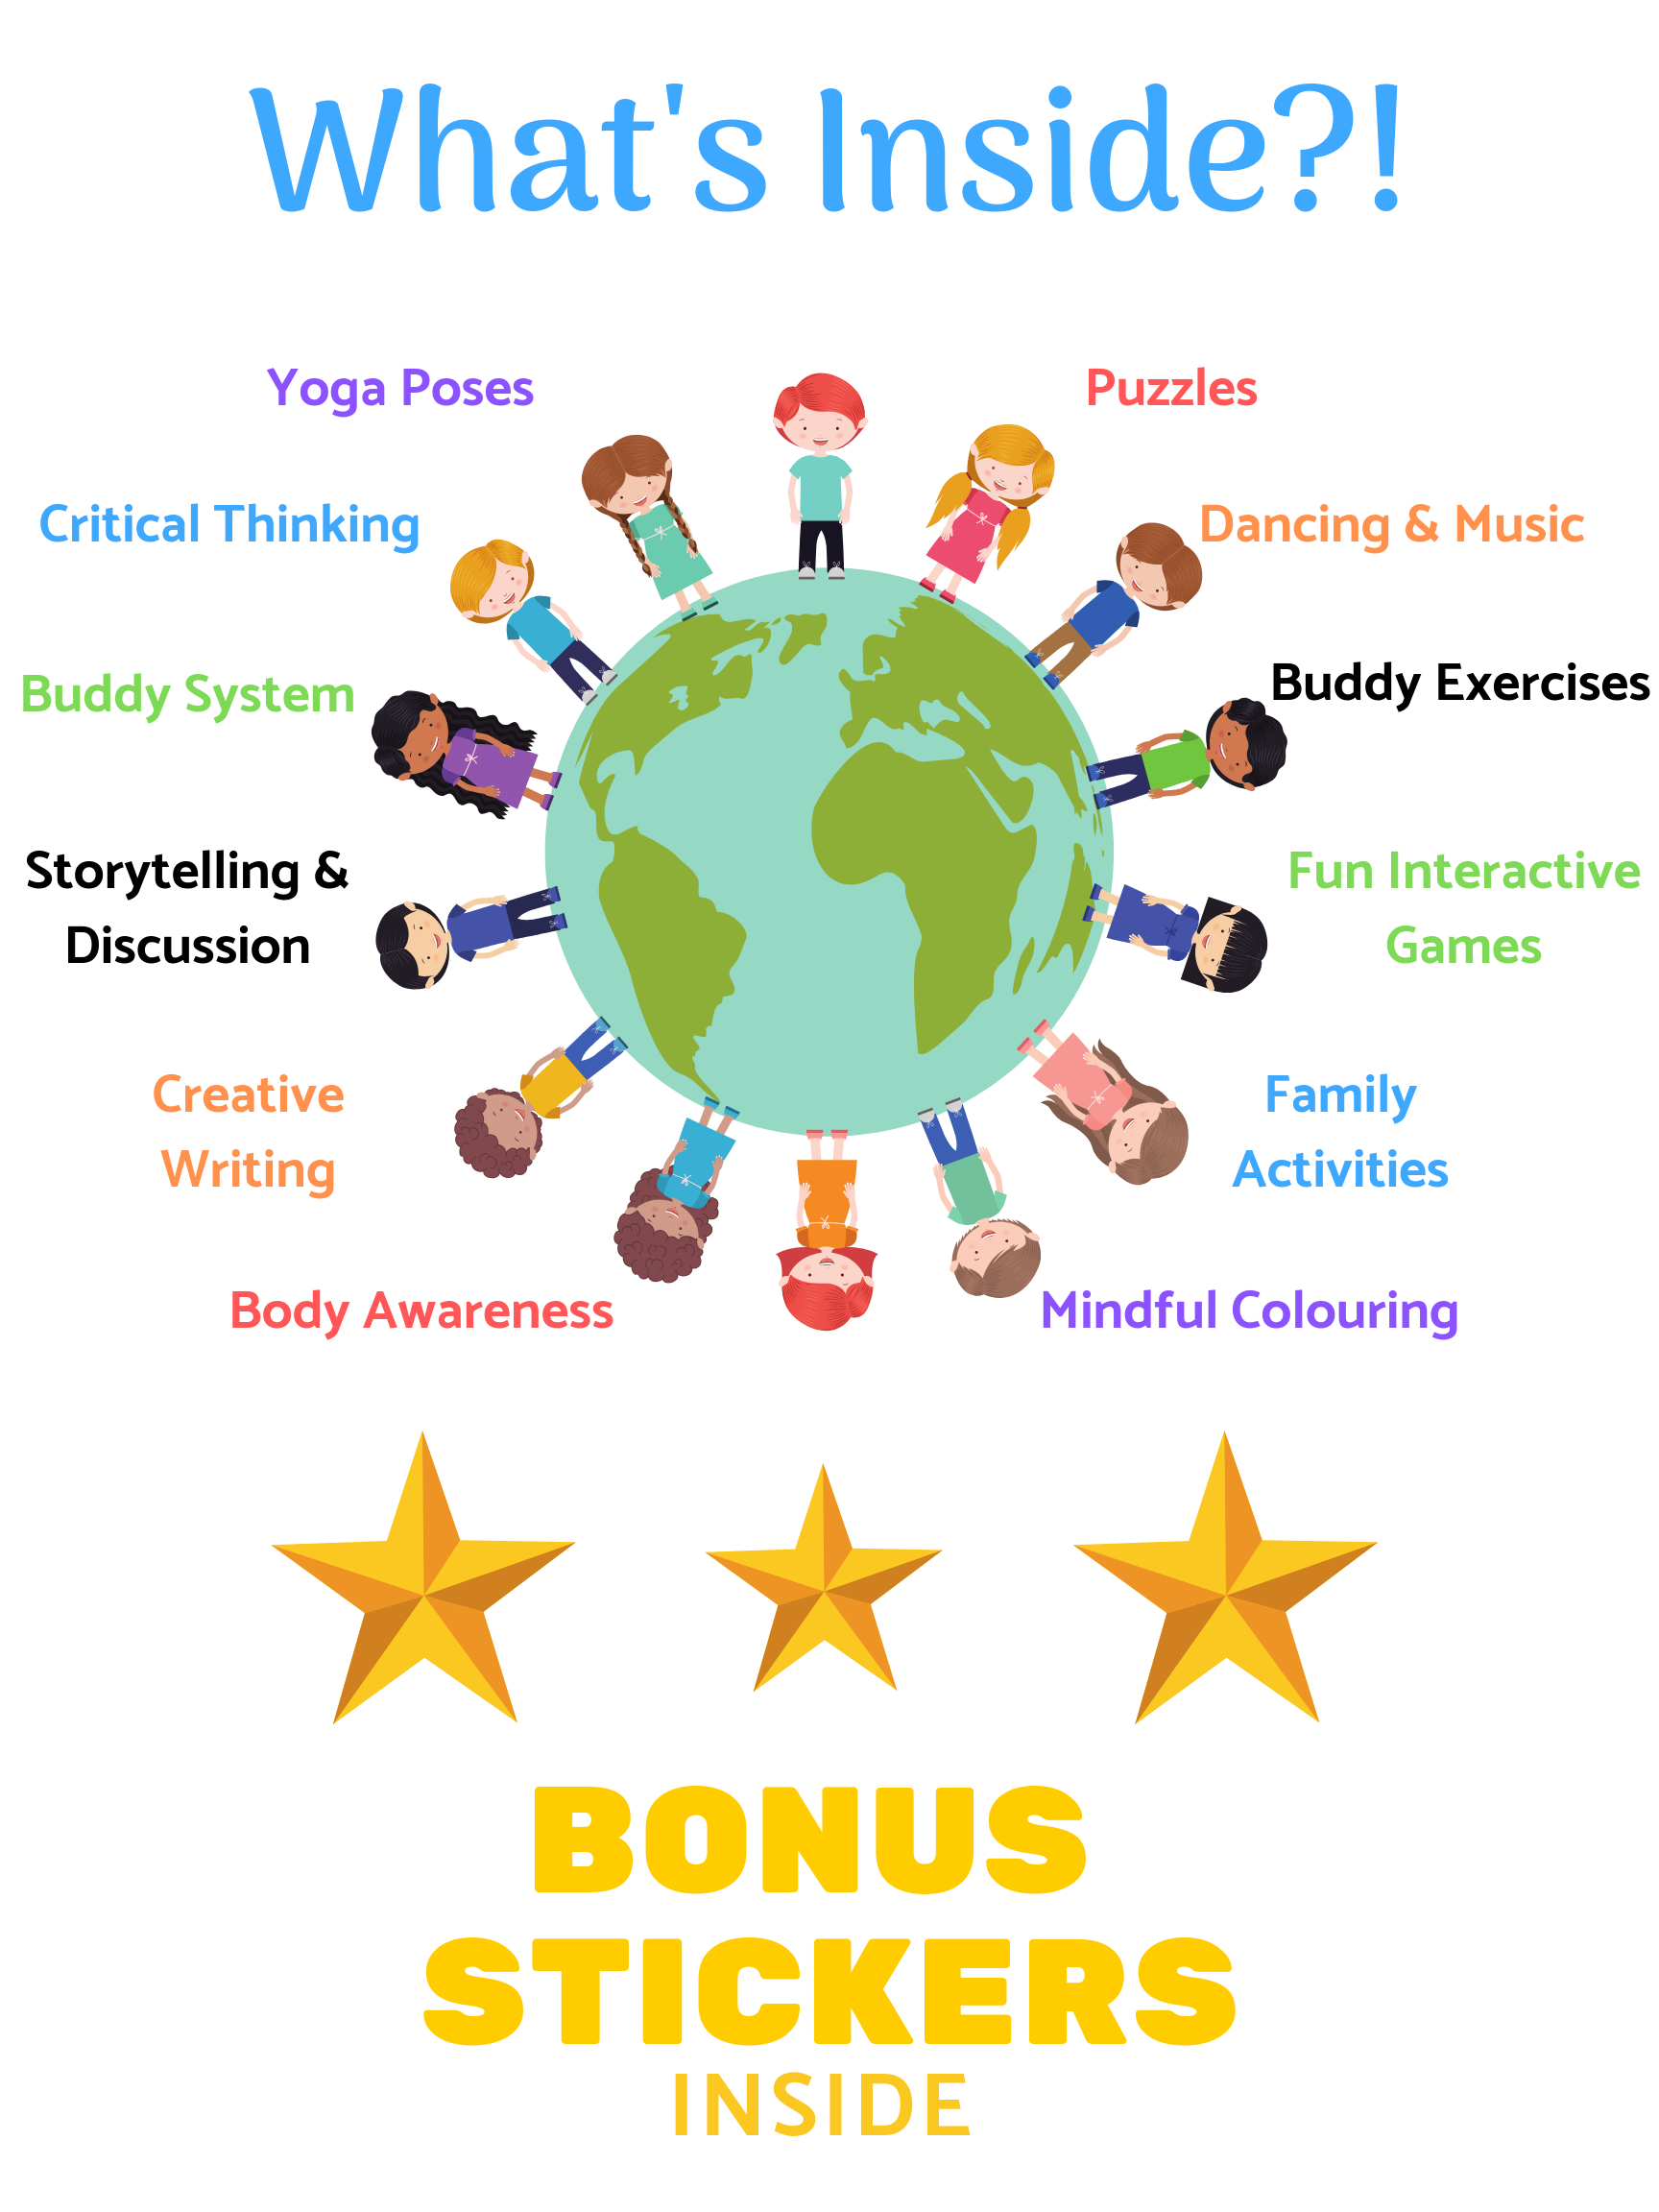 yoga, puzzles, thinking, dance, fun, mindful coloring, creative writing, storytelling, family, awareness, stickers